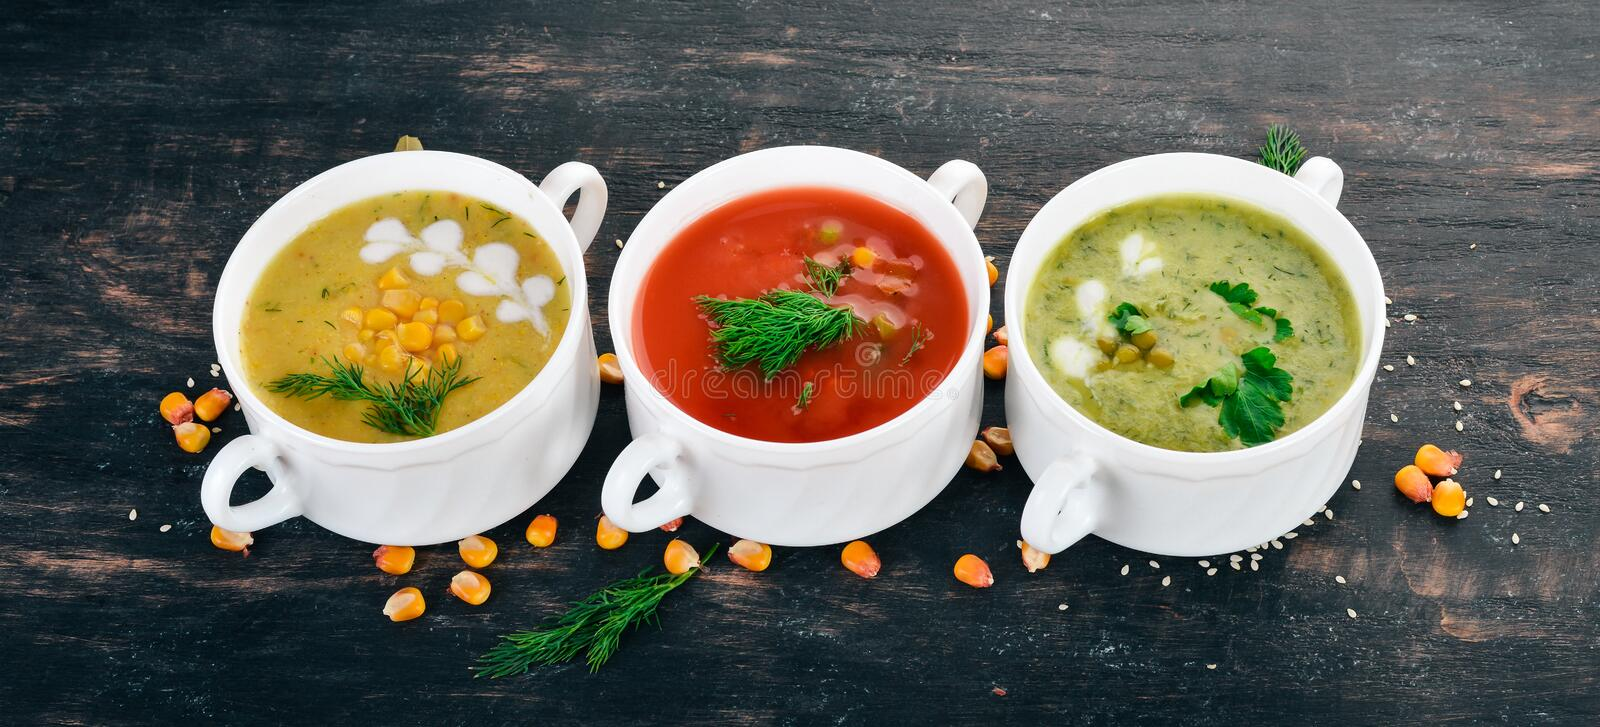 Set of hot, colored vegetable soups. Broccoli soup, corn, tomato soup. Healthy food. On a black wooden background. Copy space royalty free stock photo